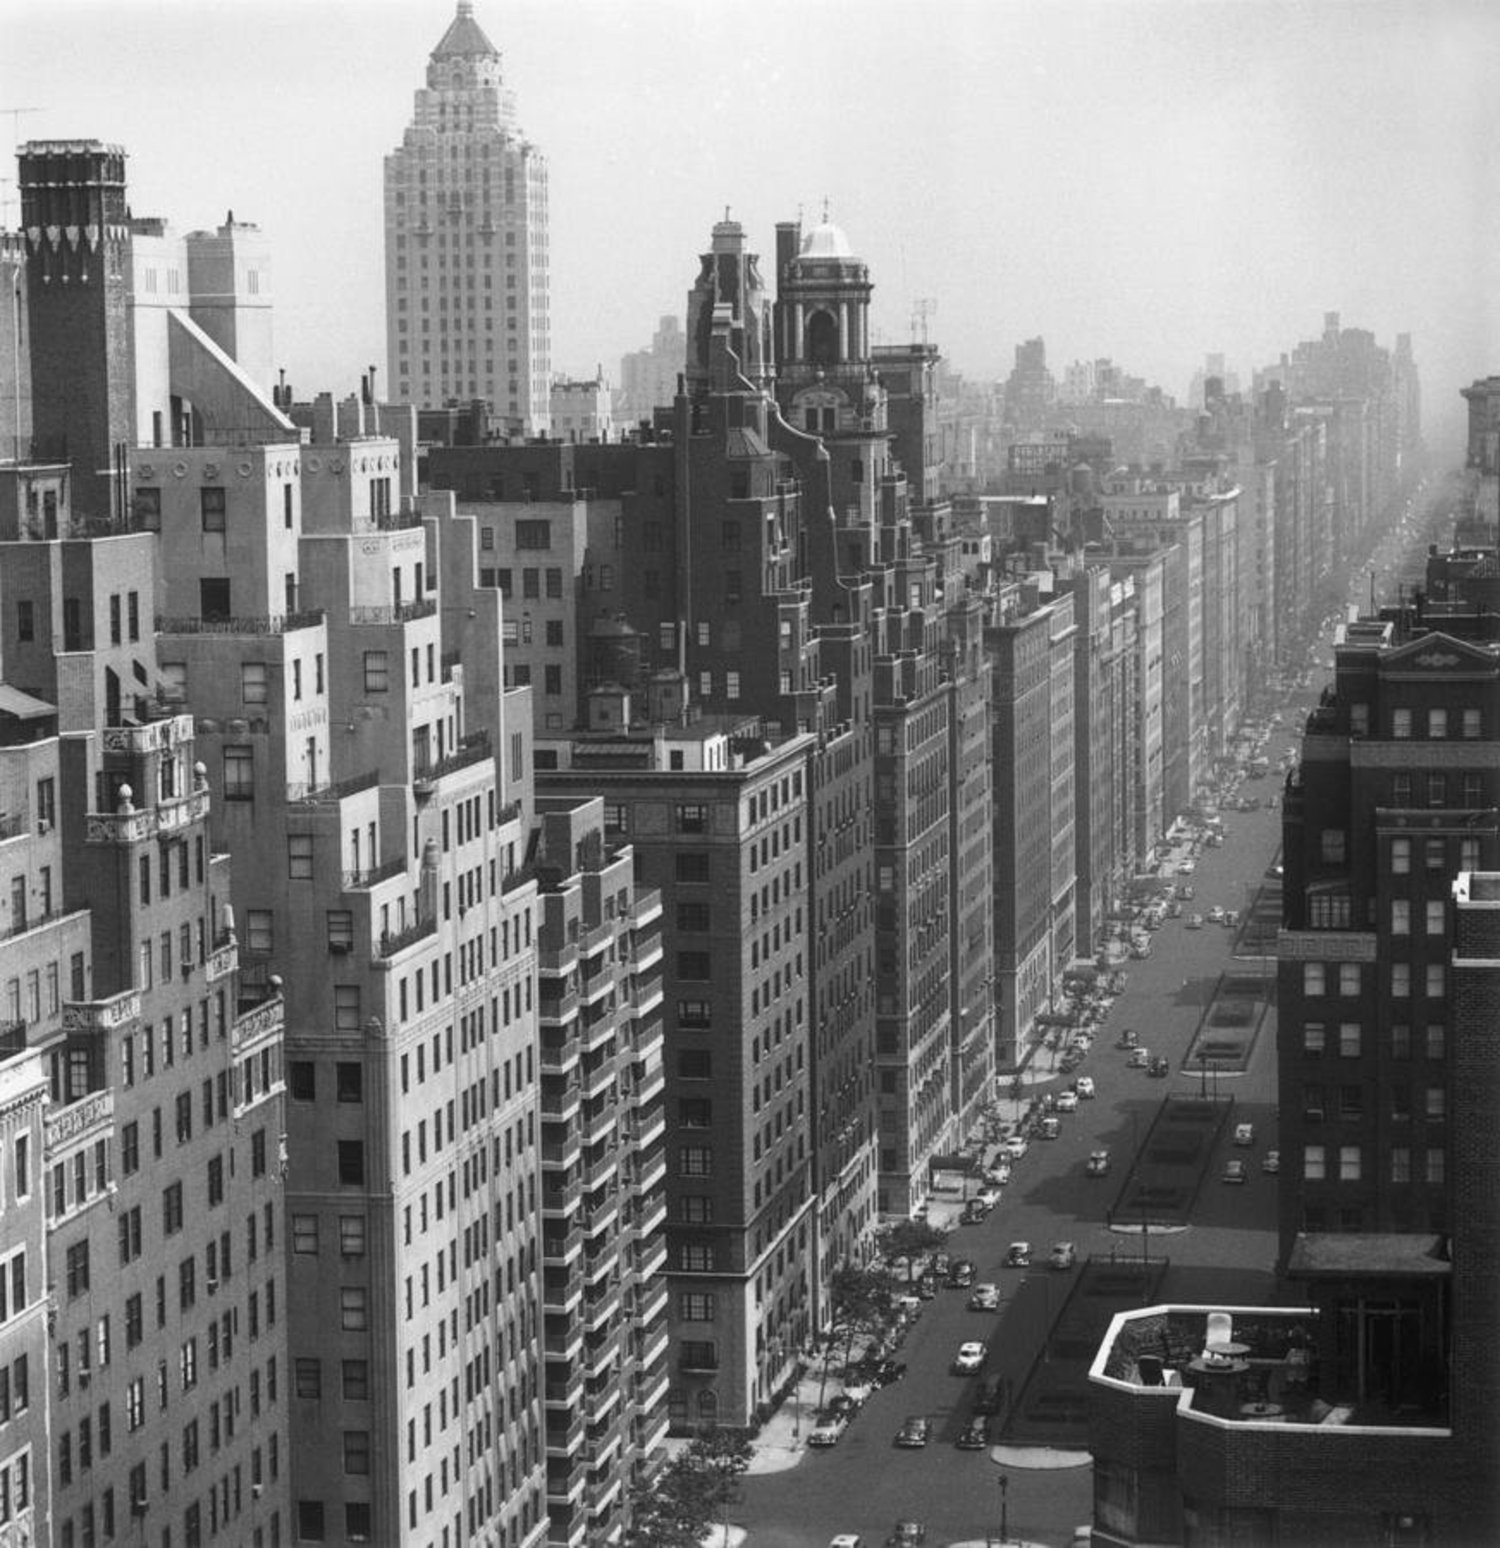 Park Avenue, New York, 1953 #Photo by Slim Aarons http://t.co/lOw3d8uY6c